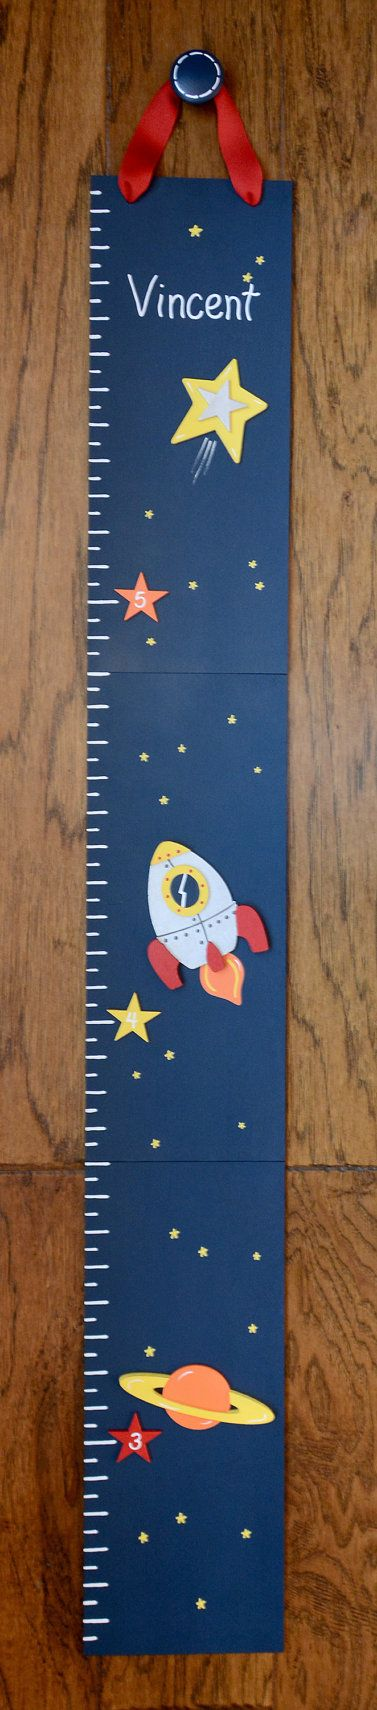 Space Rocket Wooden Growth Chart handpainted by LittleElephantCo